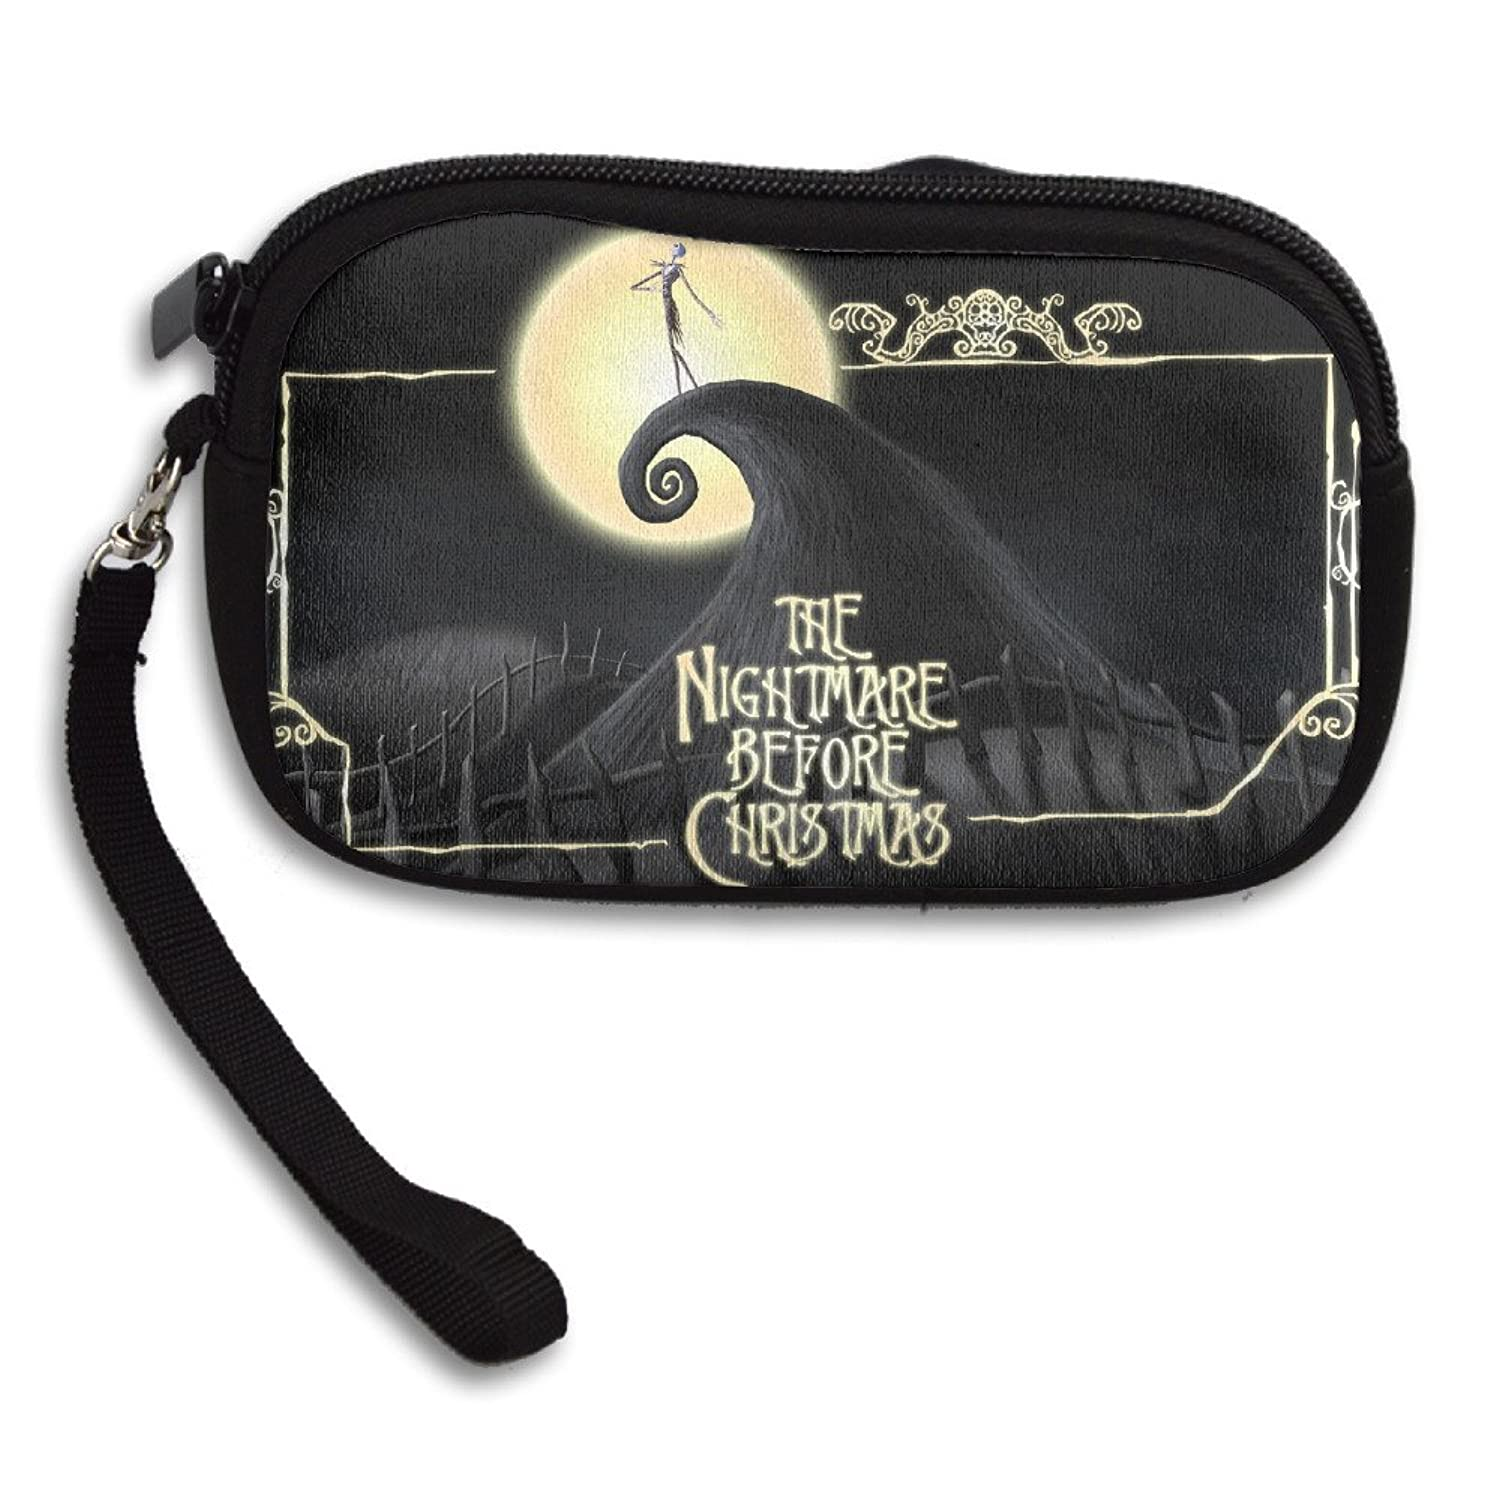 Amazon.com: YukiXD The Nightmare Before Christmas Coin Purse Wallet ...